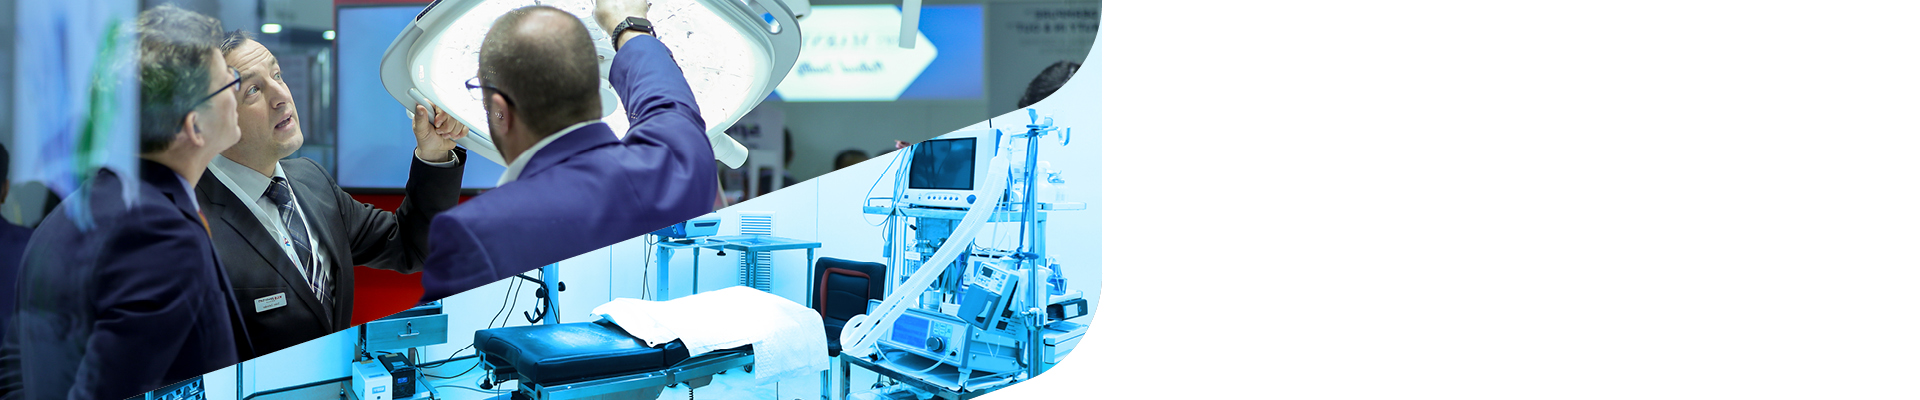 Visit FIME - The Largest Medical Equipment Trade Show